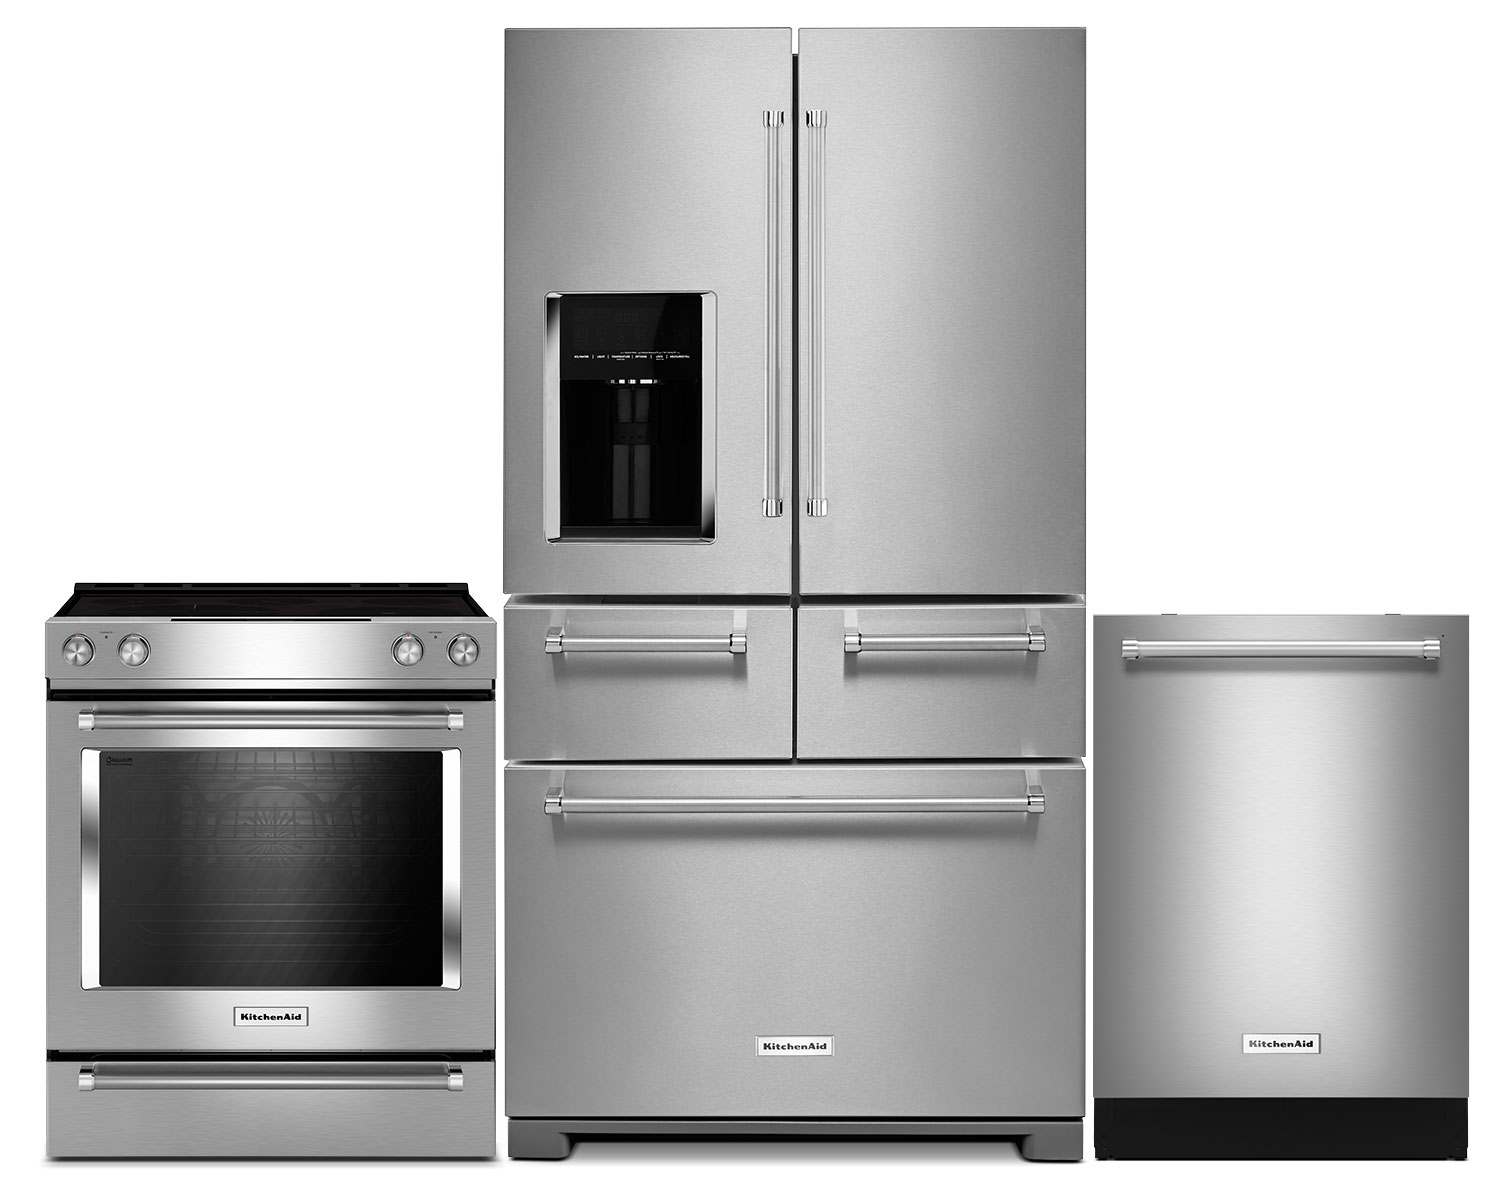 KitchenAid 25.8 Cu. Ft. 5-Door Refrigerator, 6.4 Cu. Ft. Range and Dishwasher – Stainless Steel